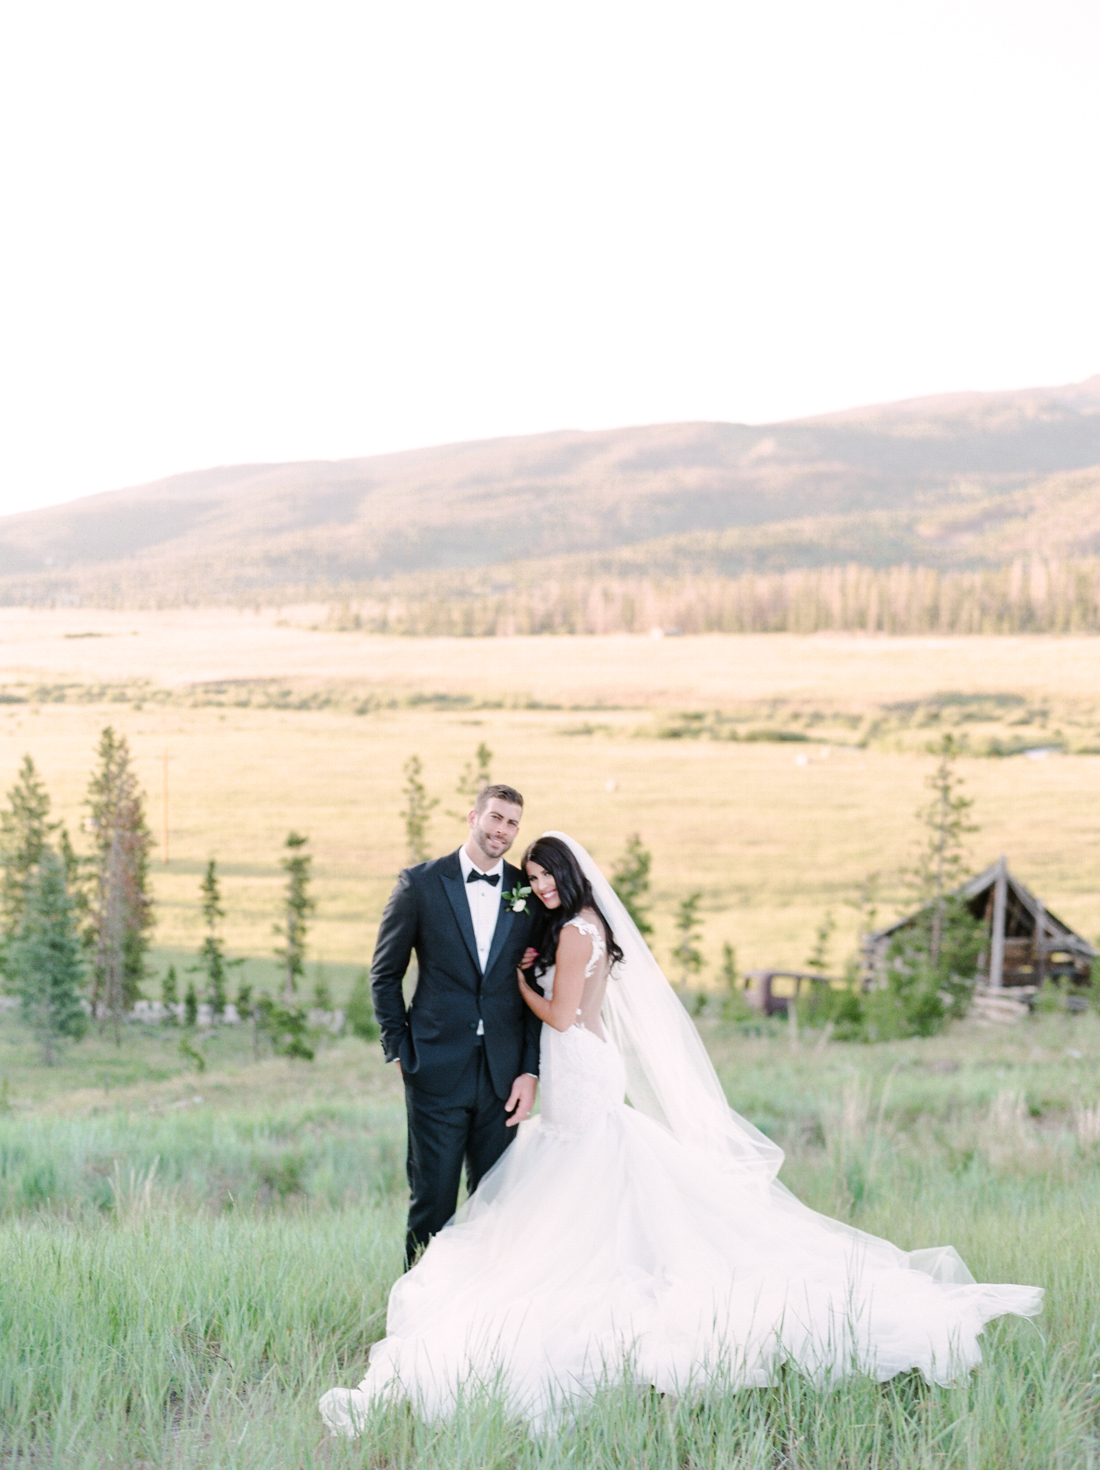 Kaitlin | July 2017 | Devil's Thumb Ranch | Tabernash, CO |  Connie Whitlock Photography